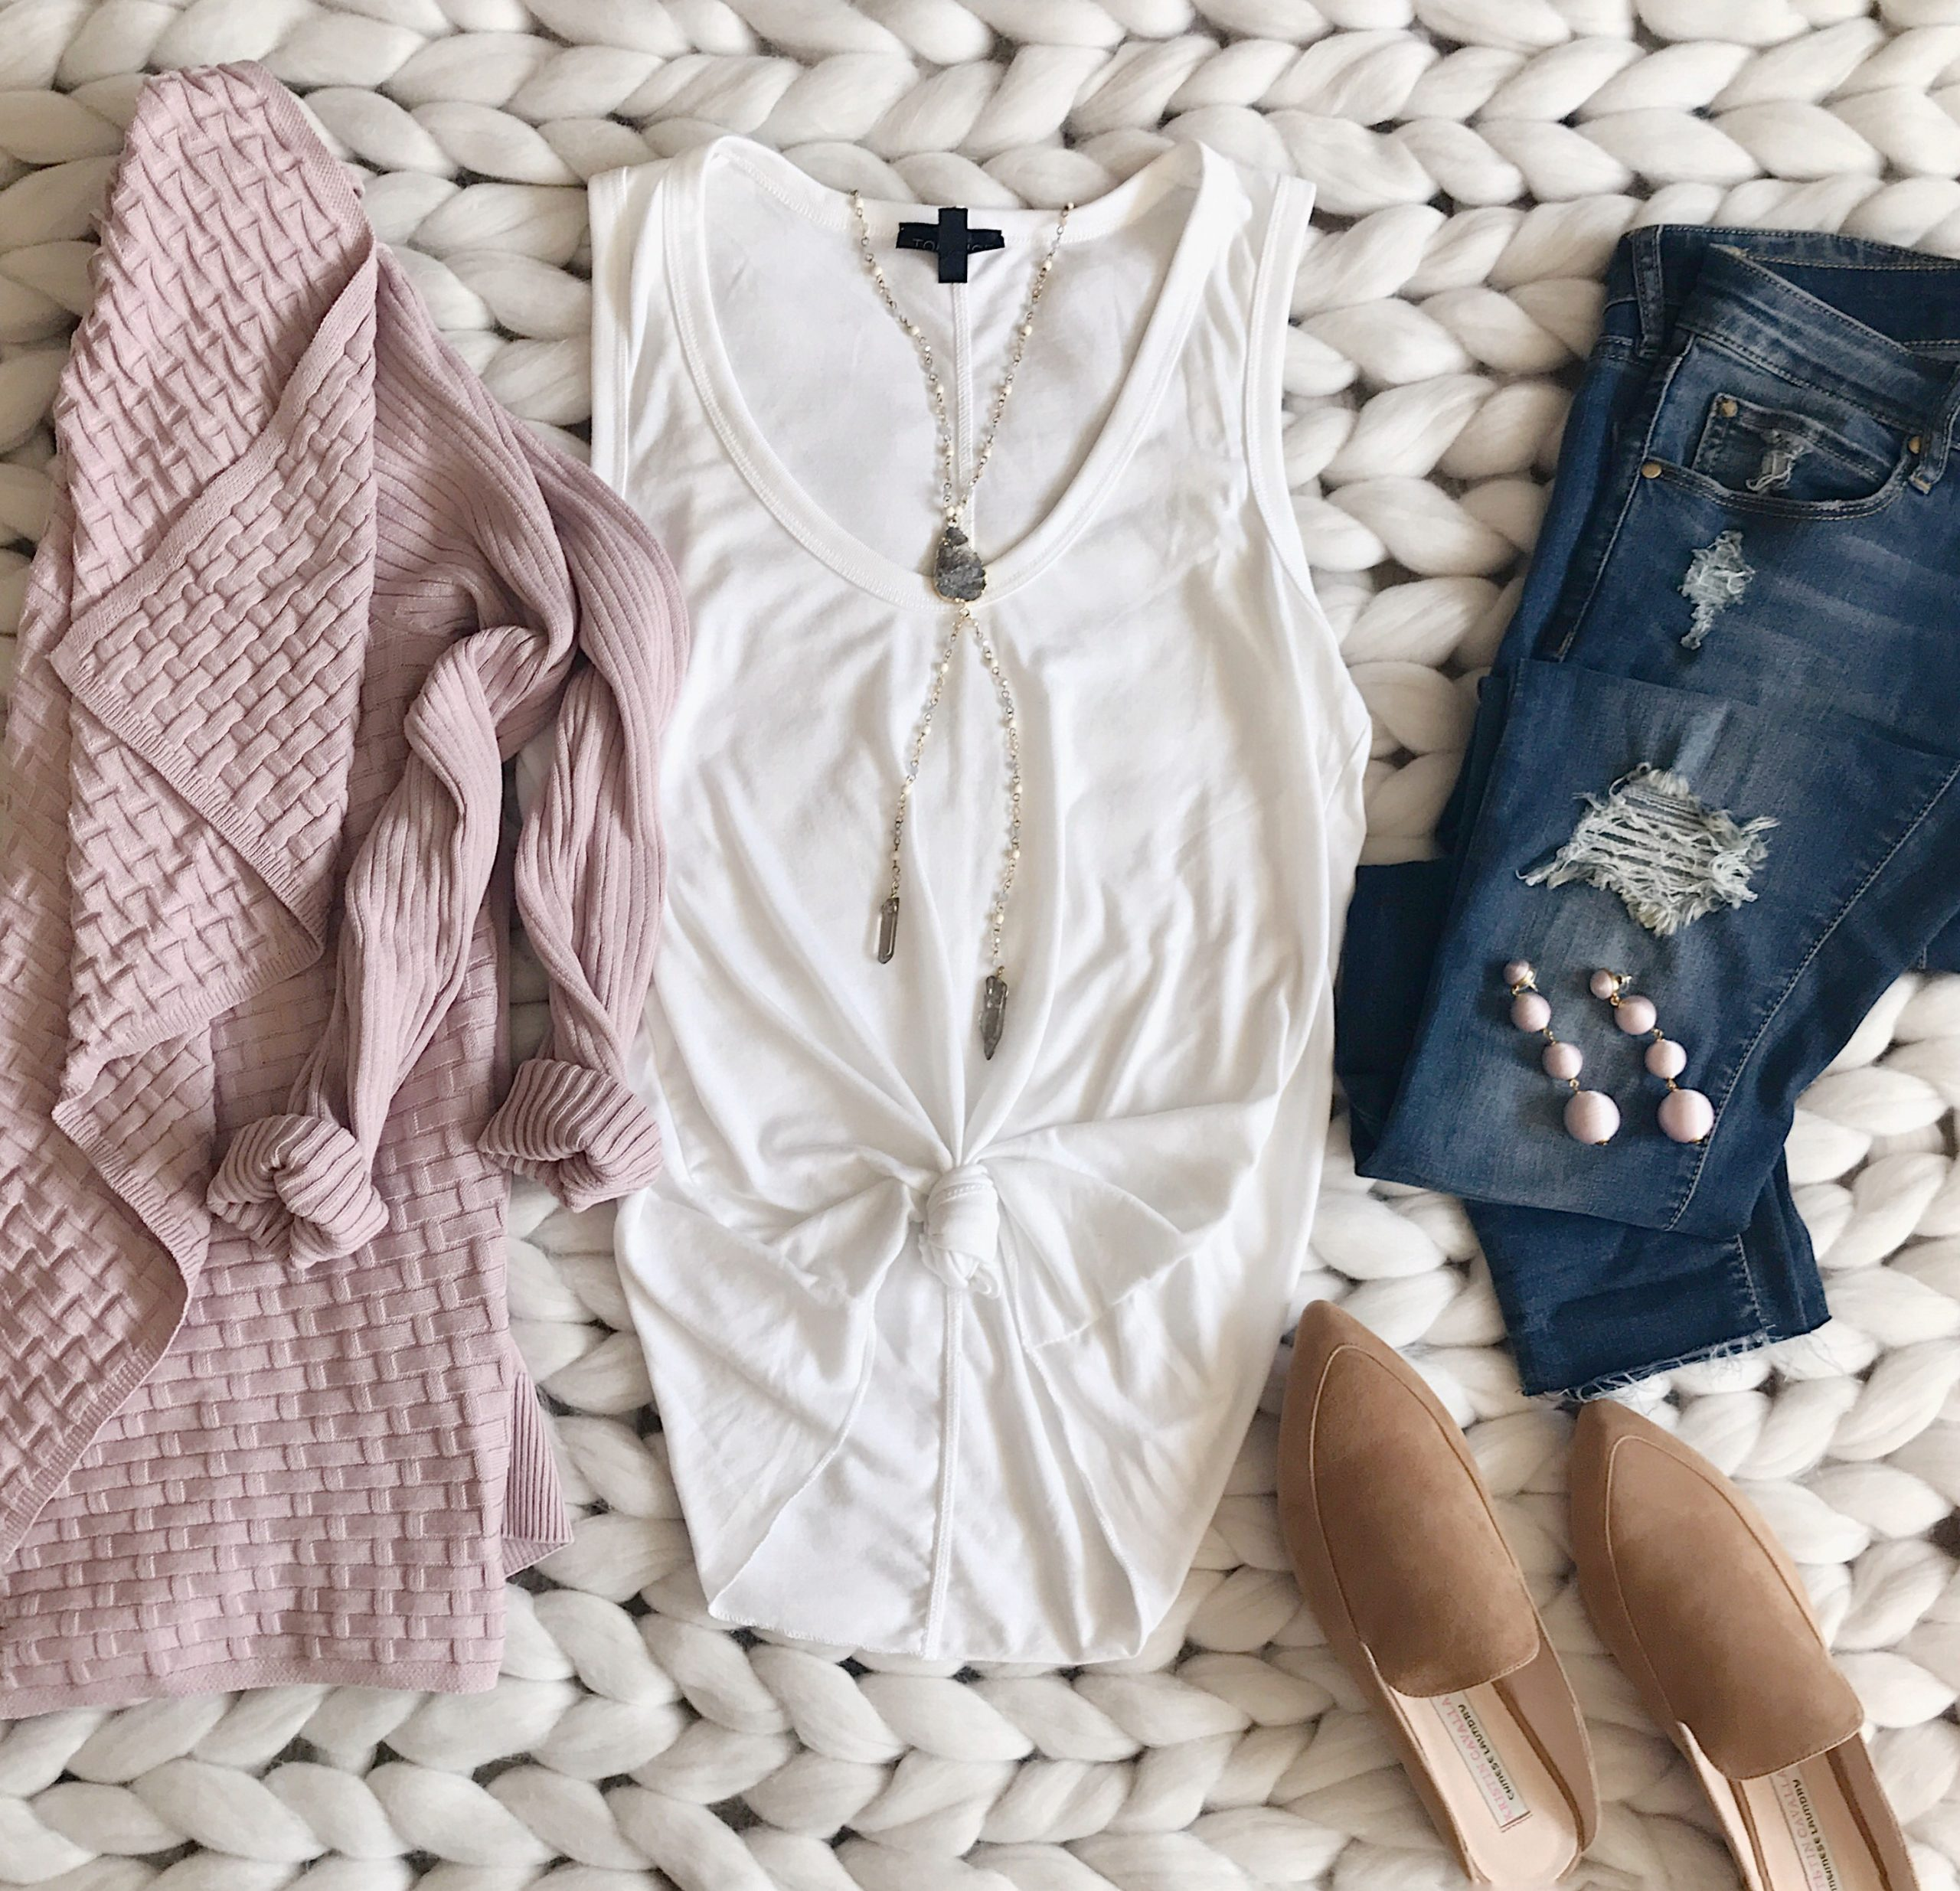 Blushing Rose Style fall outfits flatlay